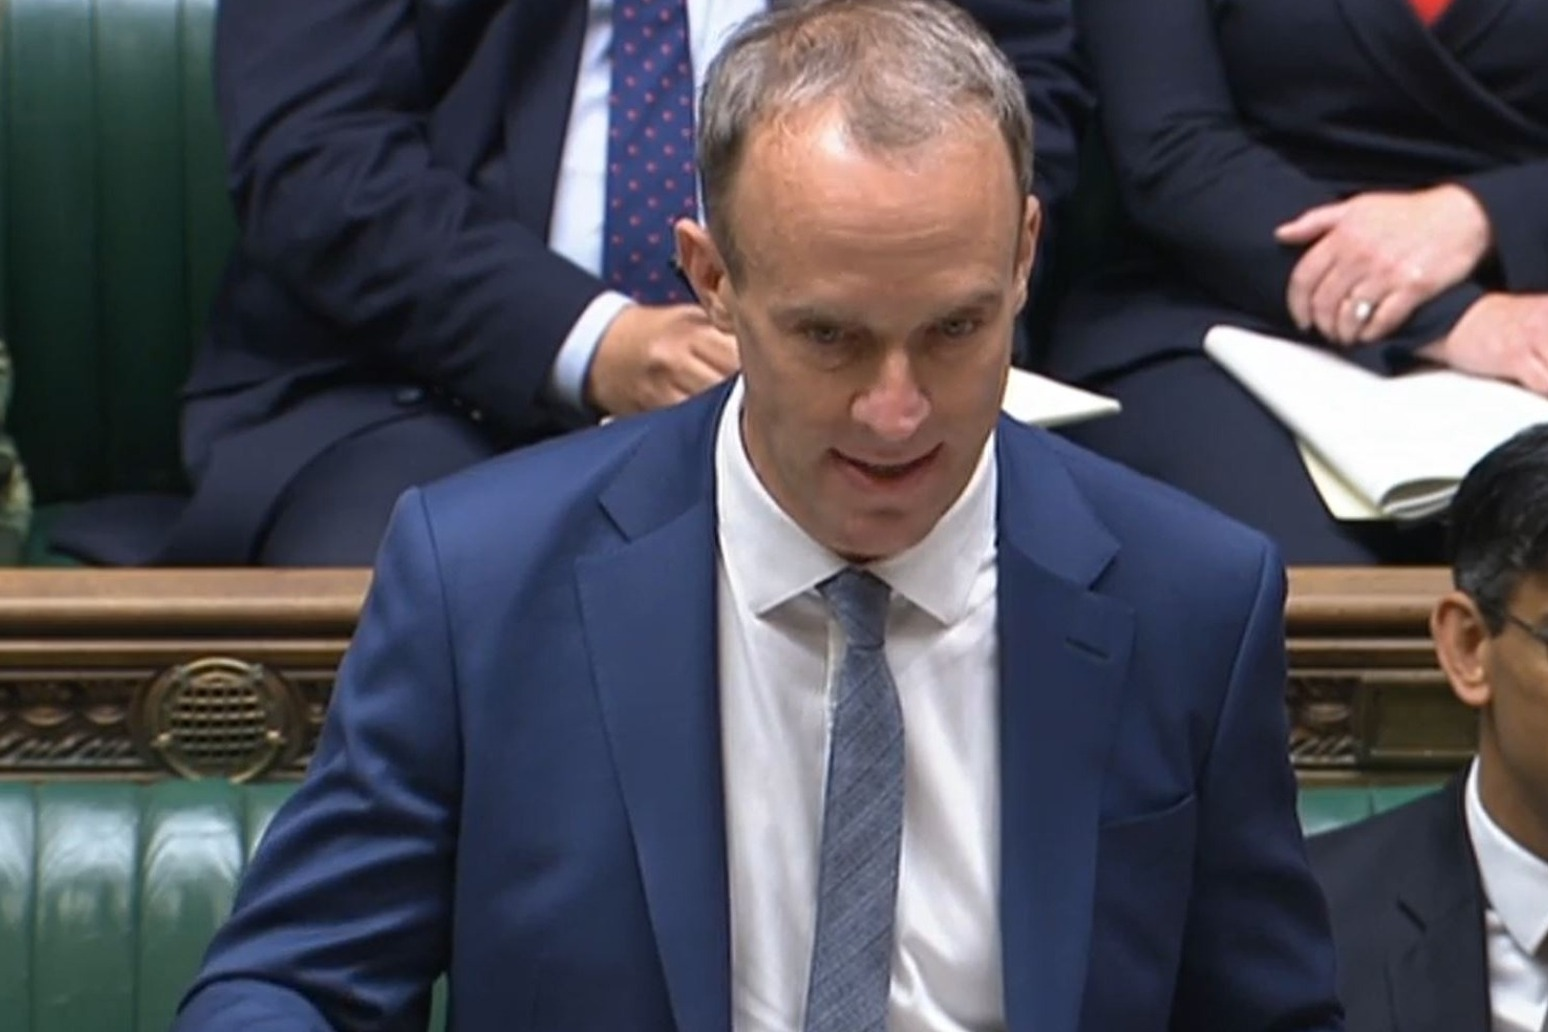 Raab pressed to guarantee people will not suffer fuel poverty